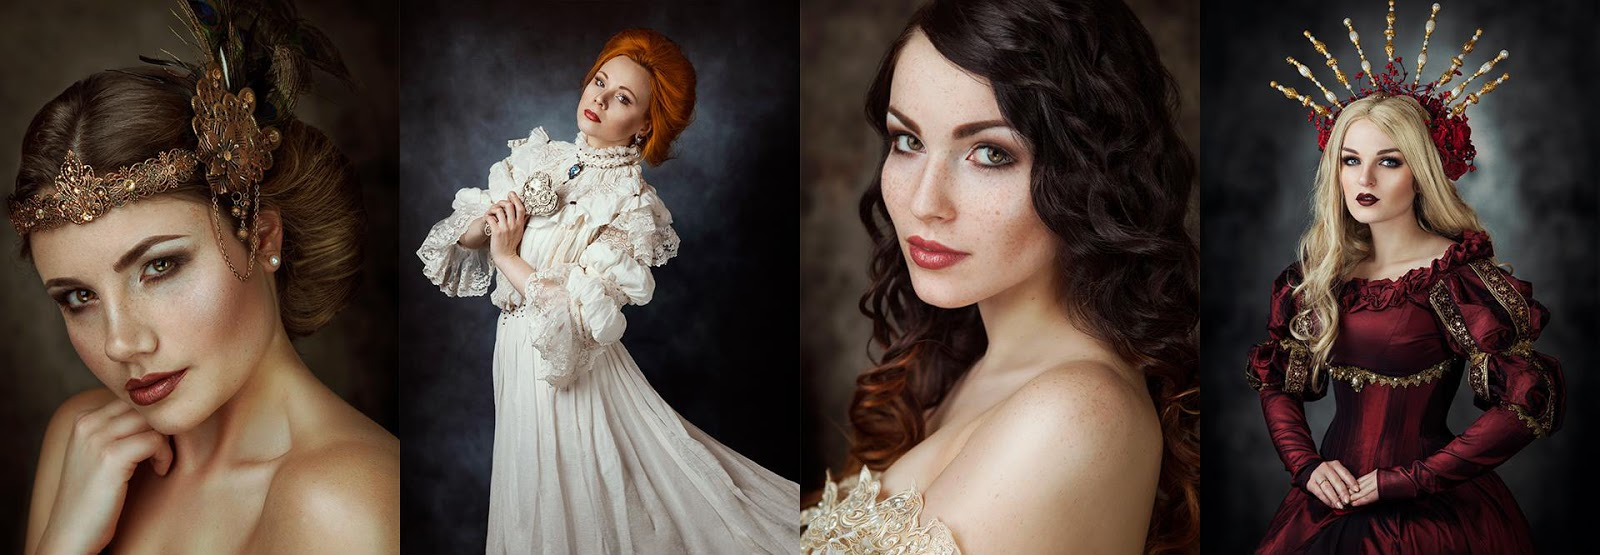 Märchen, Historisch, Make-up, Makeover Shooting